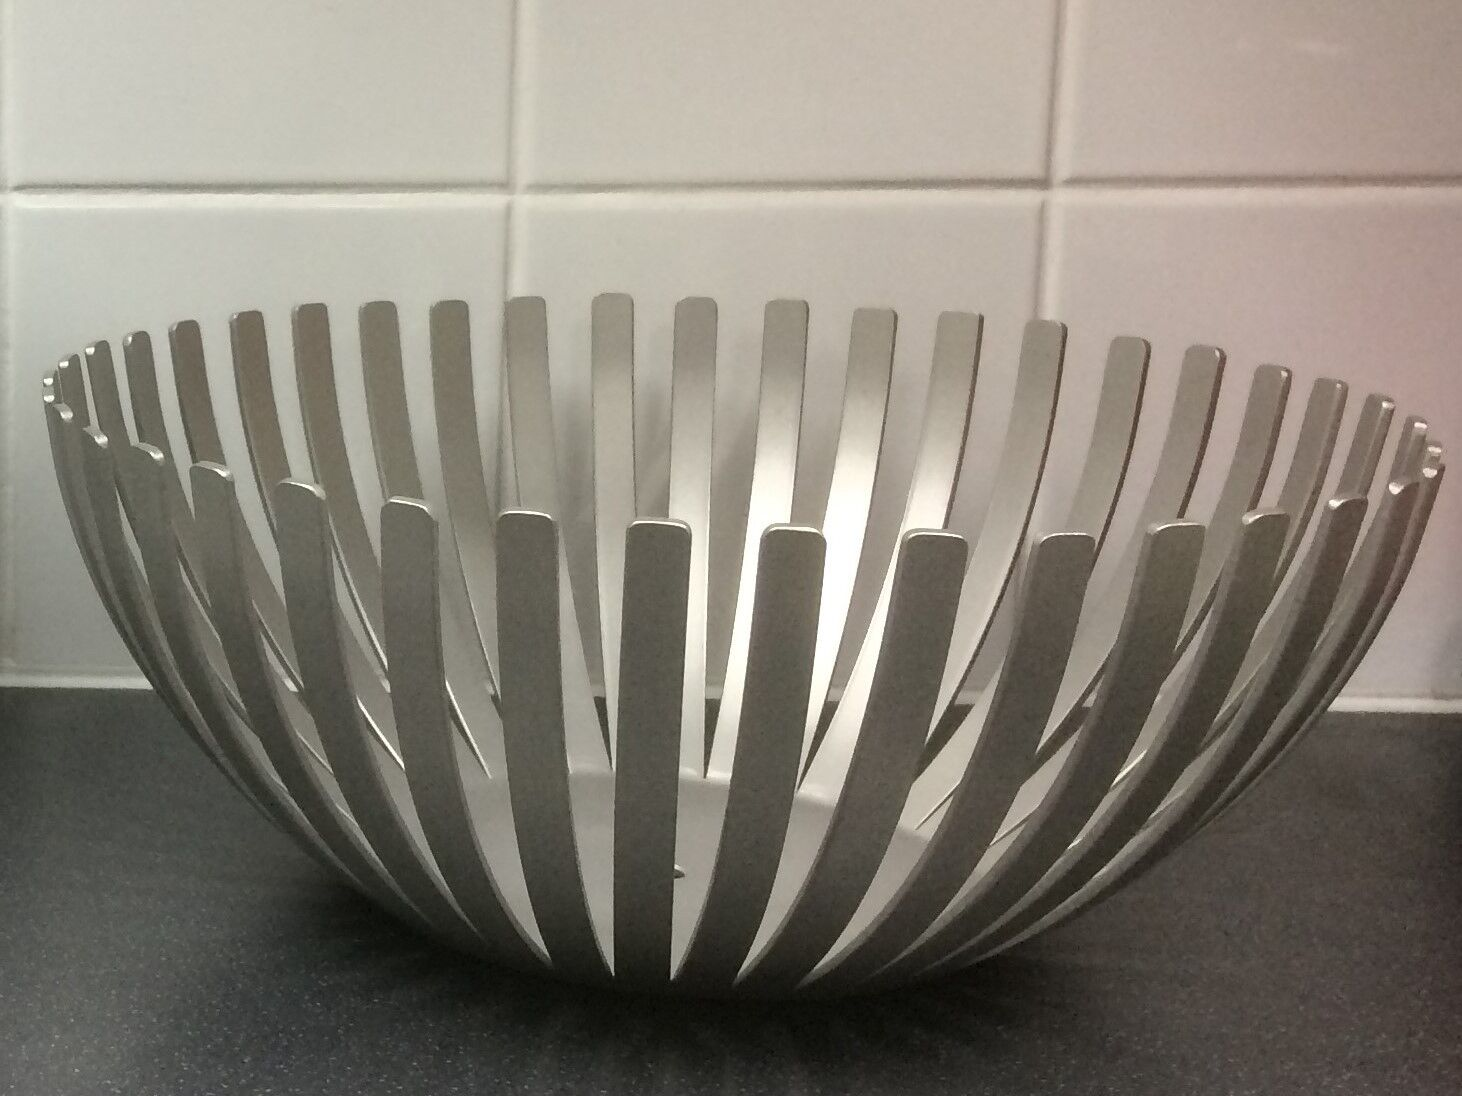 Fruit bowl Large handmade in Stainless Steel ideal wedding gift